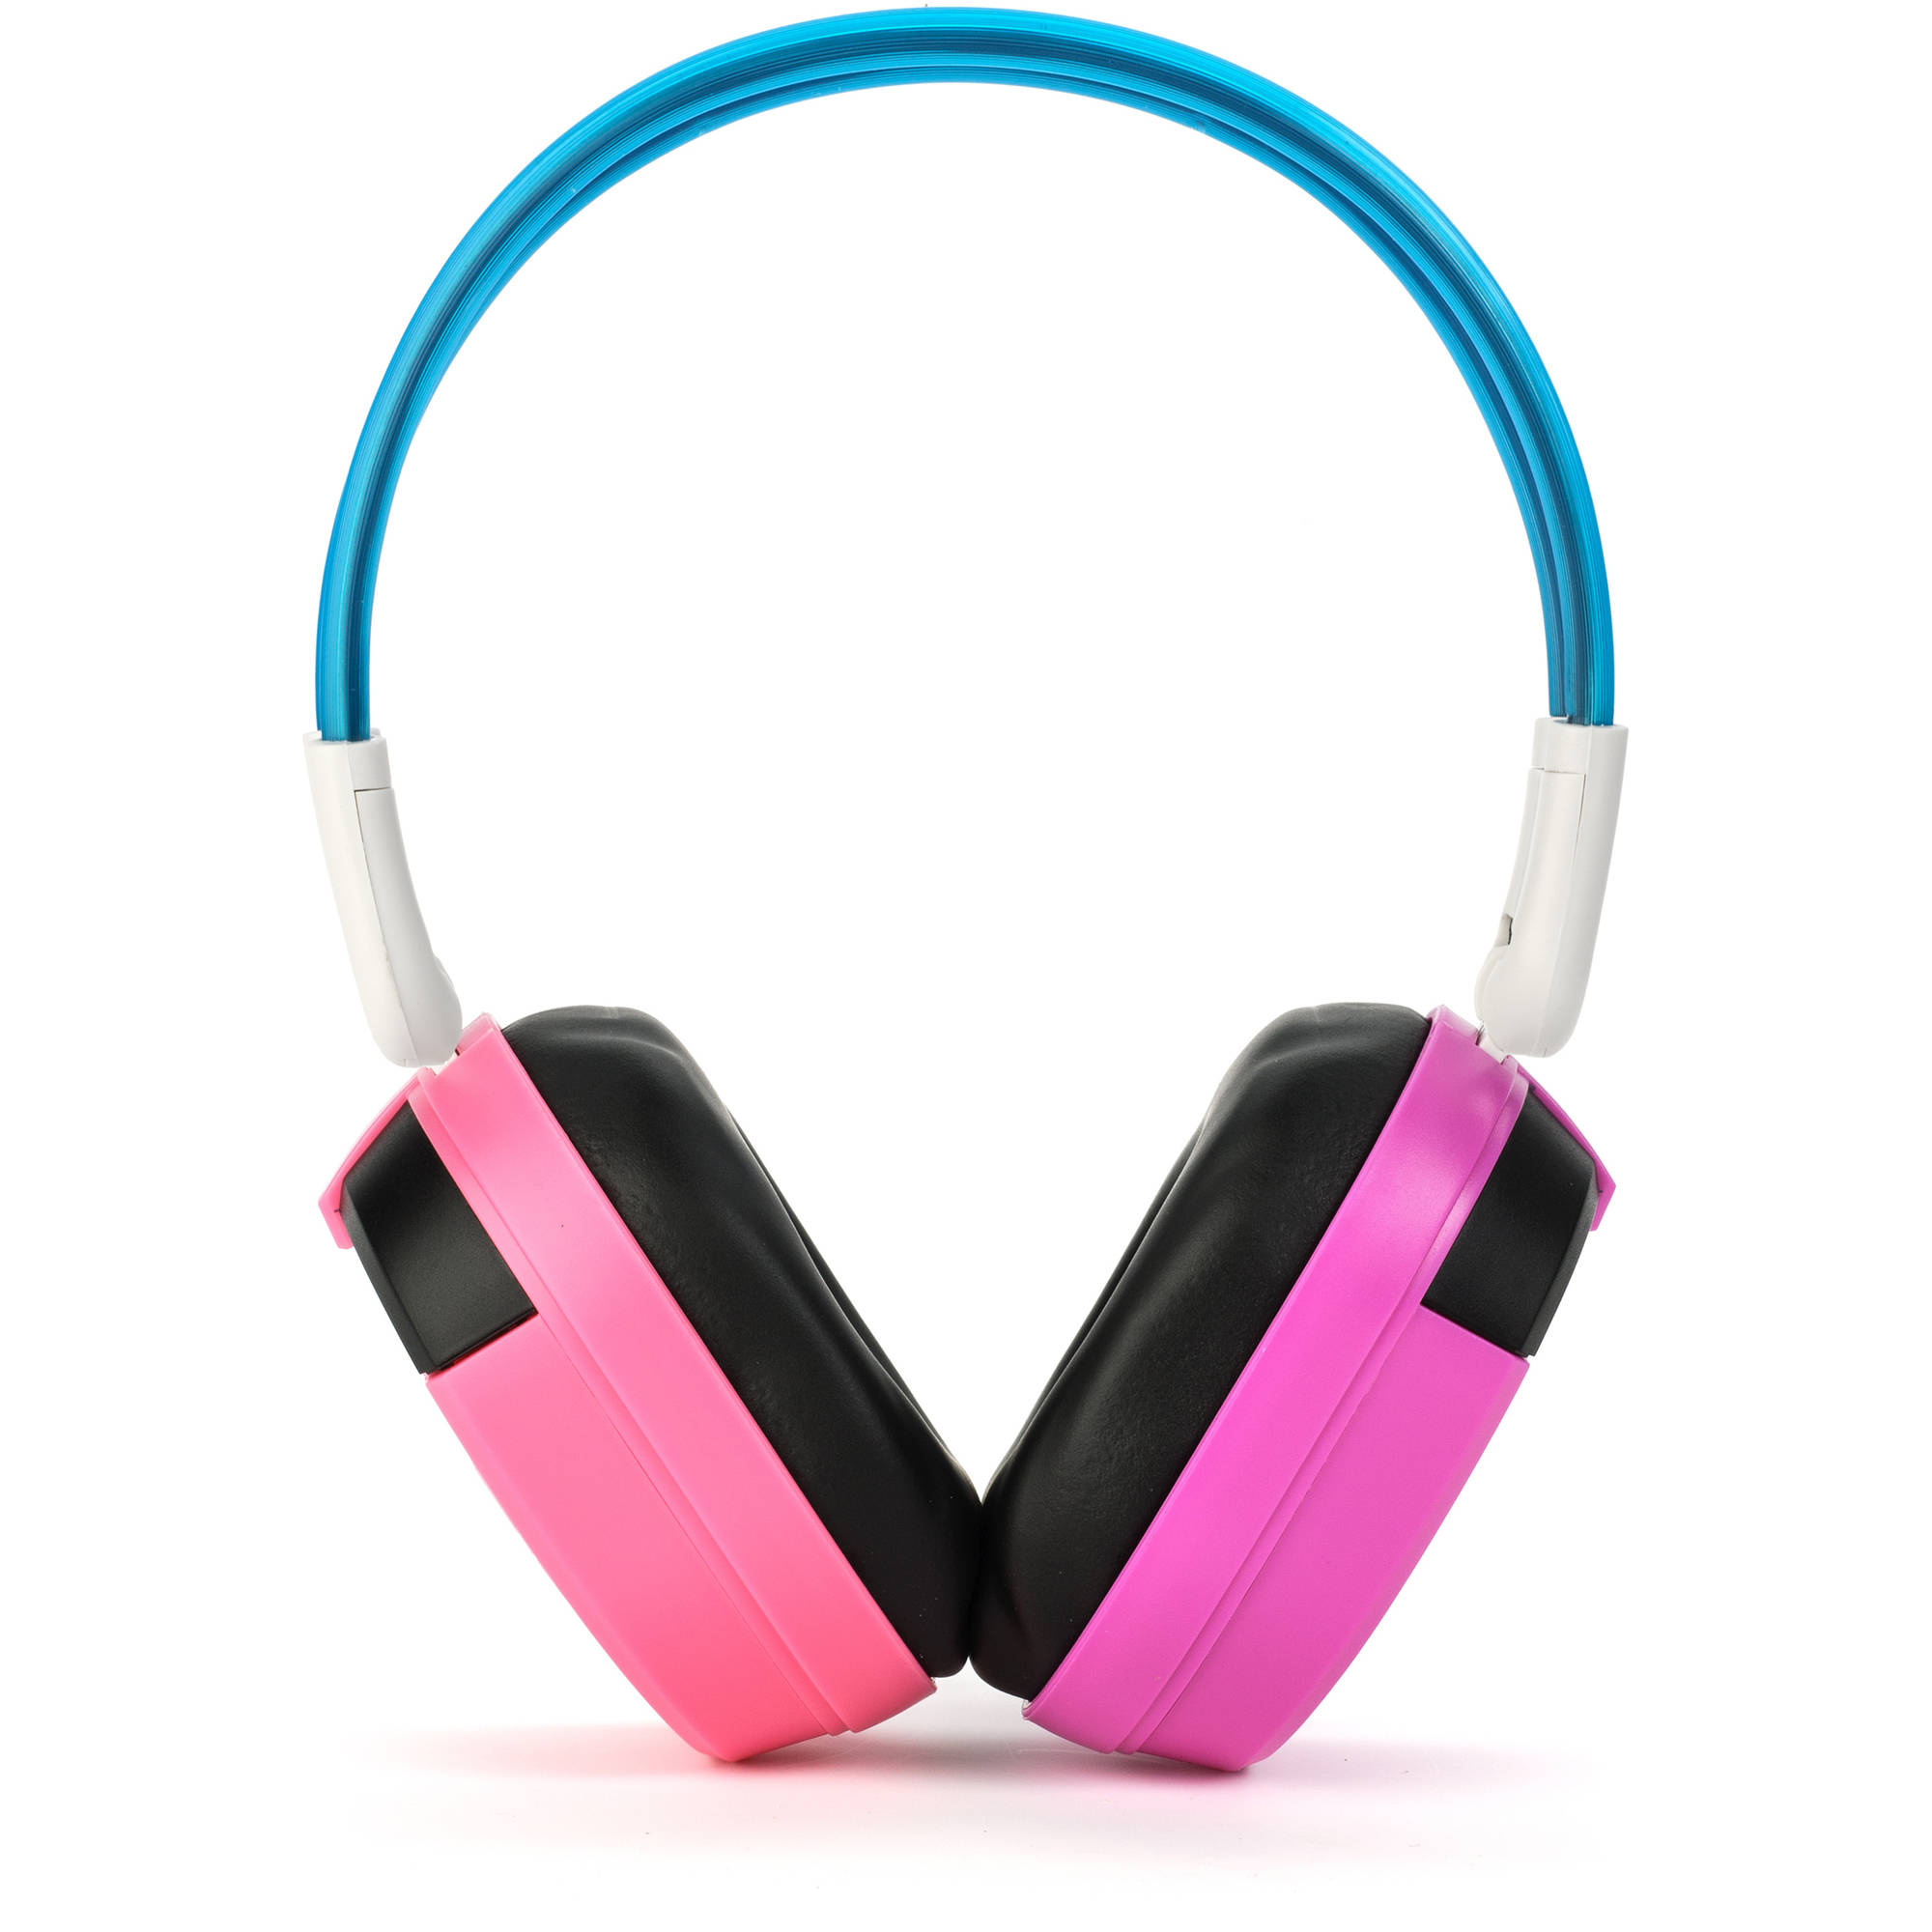 Bravo View IH-04A - KID FRIENDLY Automotive IR Wireless Headphones (Pink/Purple)